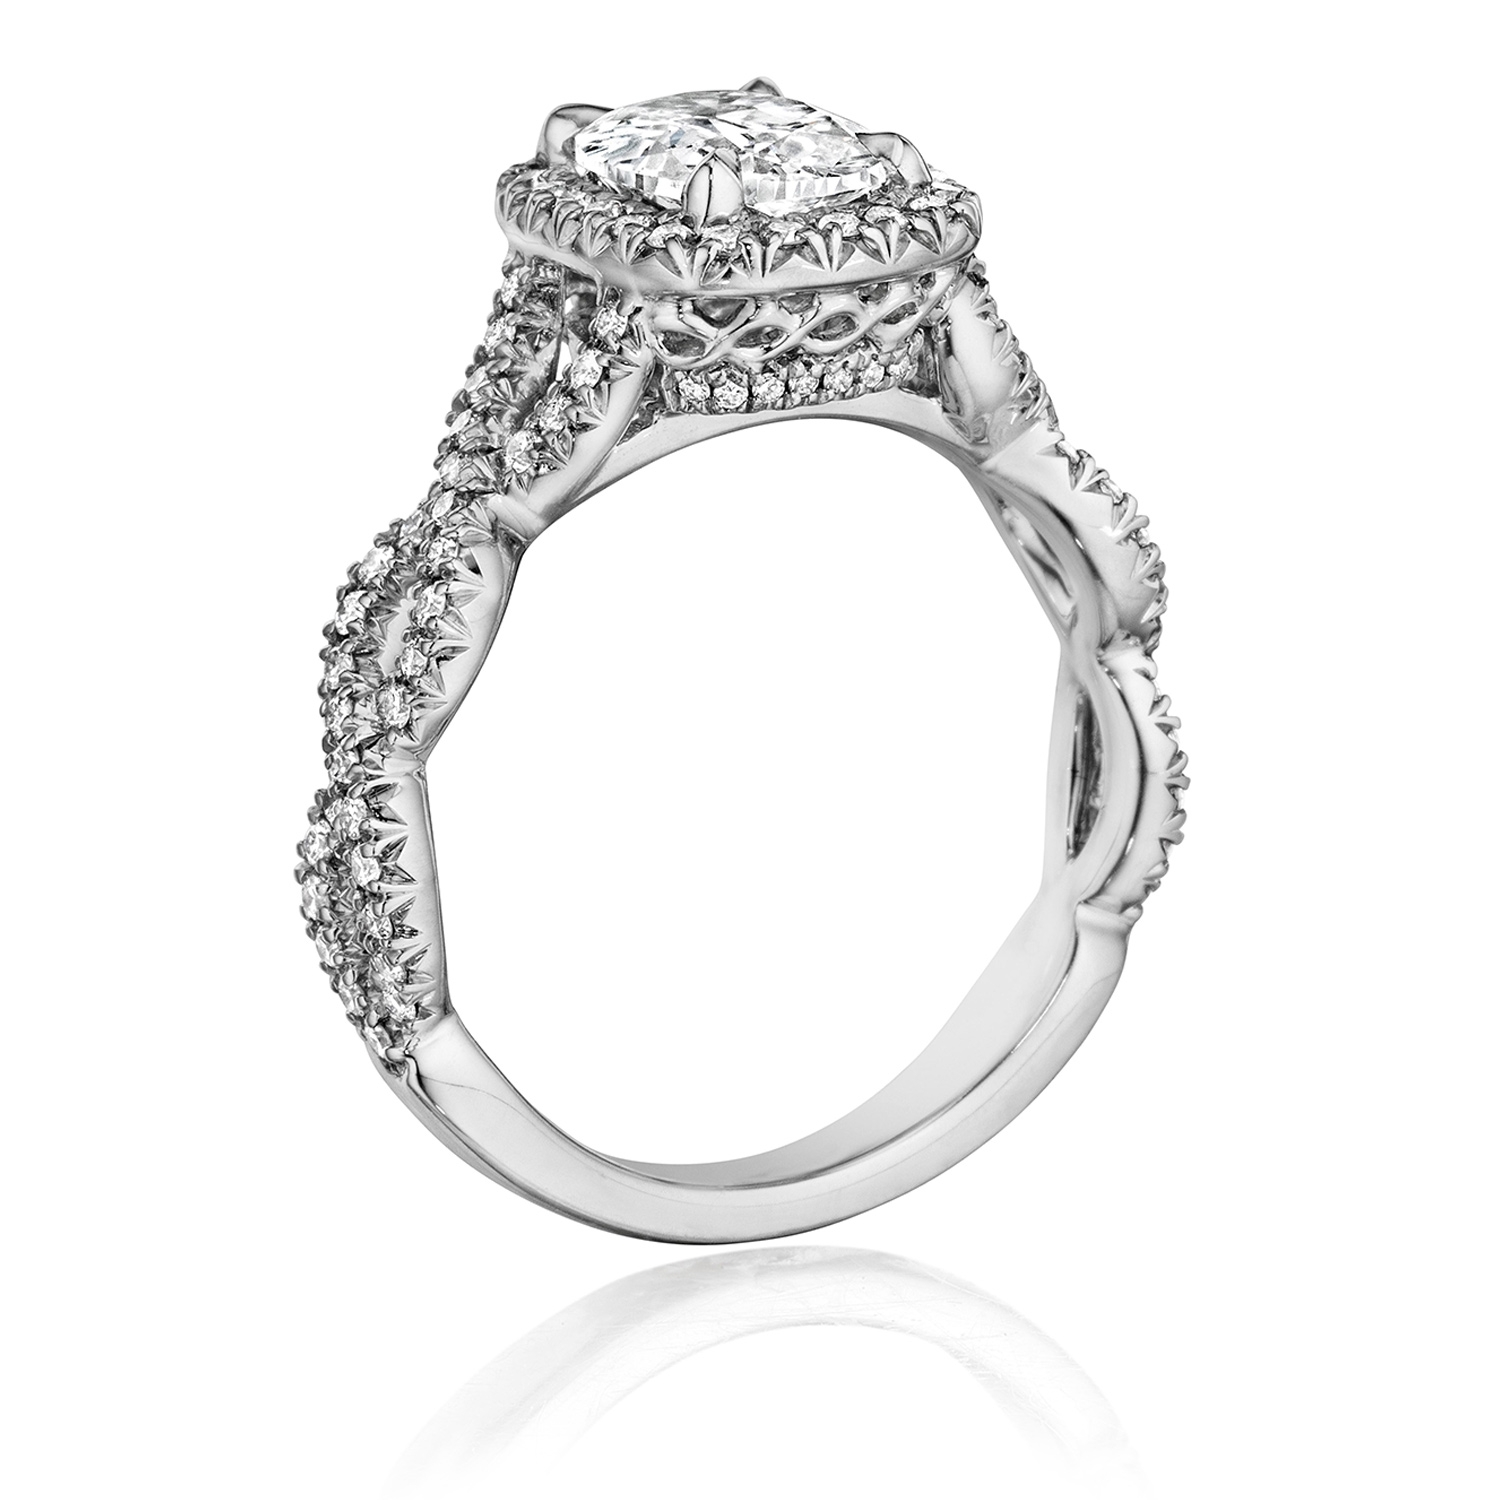 Henri Daussi ATWS Cushion Halo Interlaced Shank Diamond Engagement Ring Alternative View 1